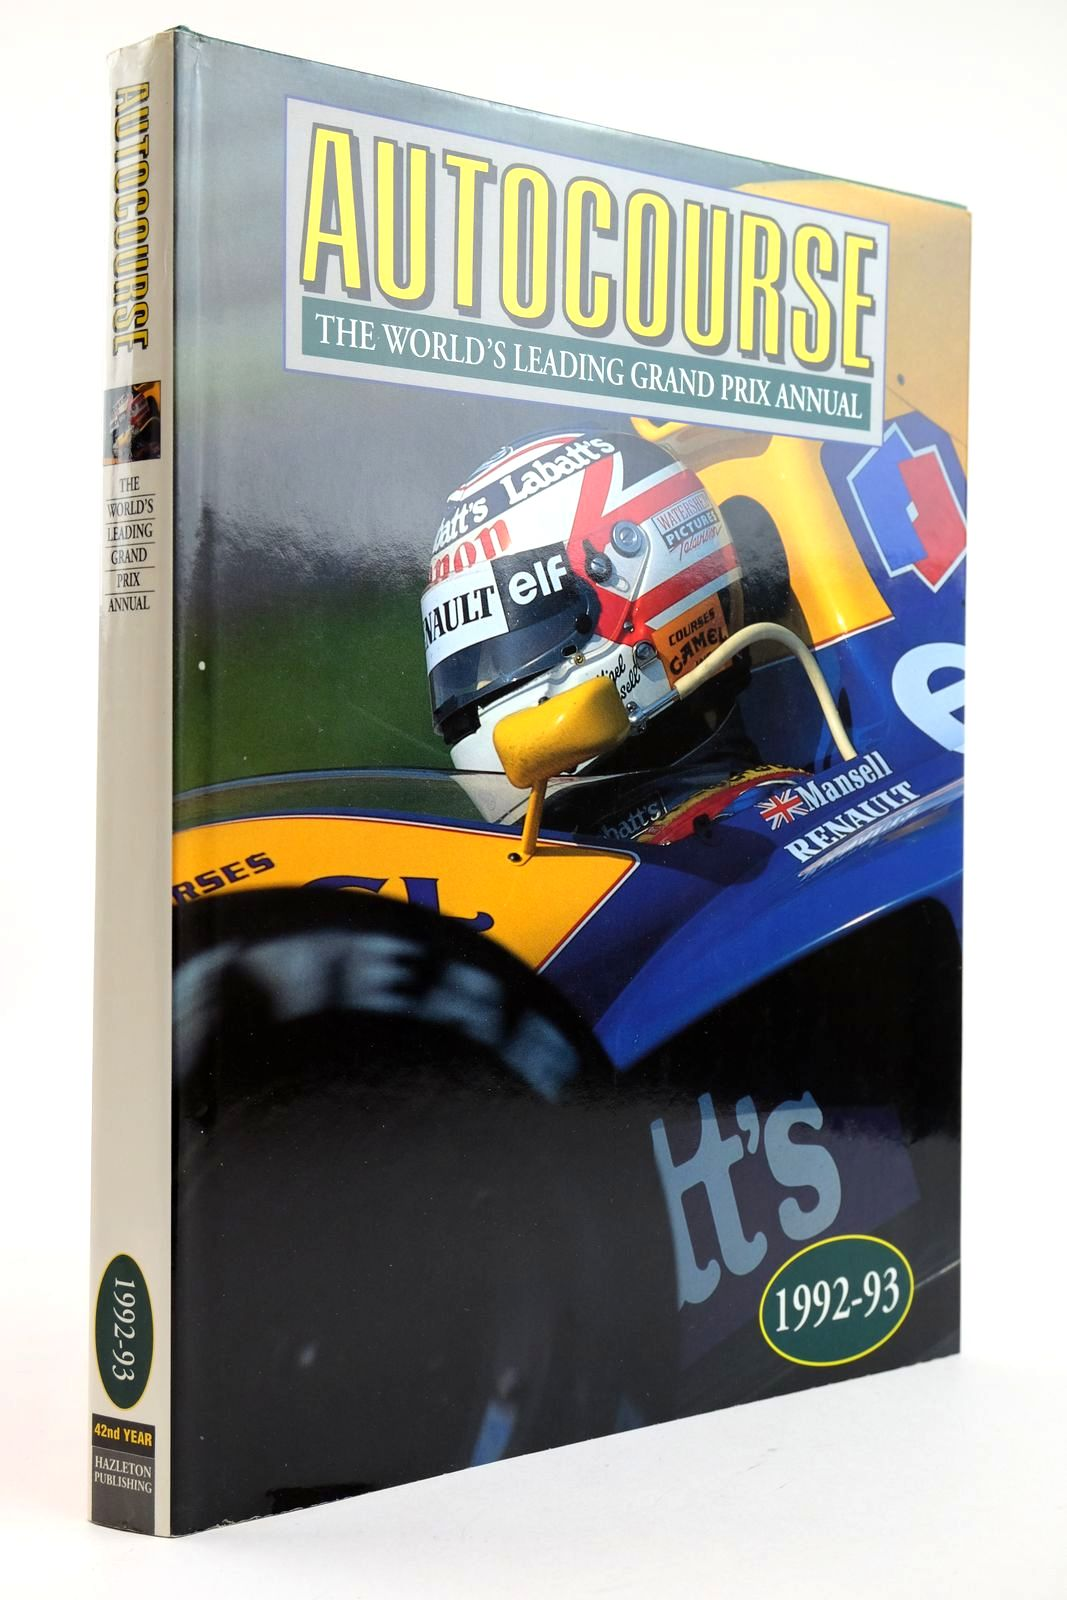 Photo of AUTOCOURSE 1992-93 published by Hazleton Publishing (STOCK CODE: 2132732)  for sale by Stella & Rose's Books